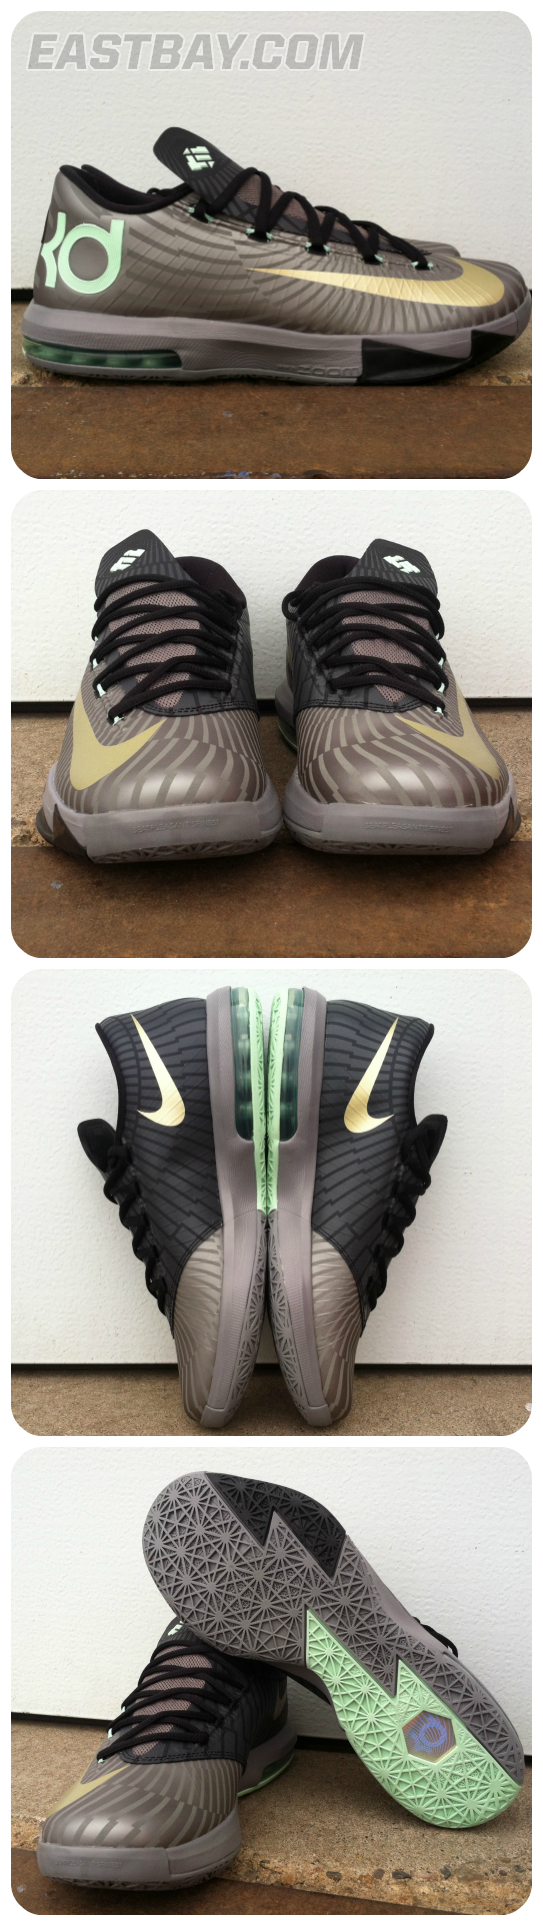 brand new 4426d d4595 basketball kd shoes foams nike